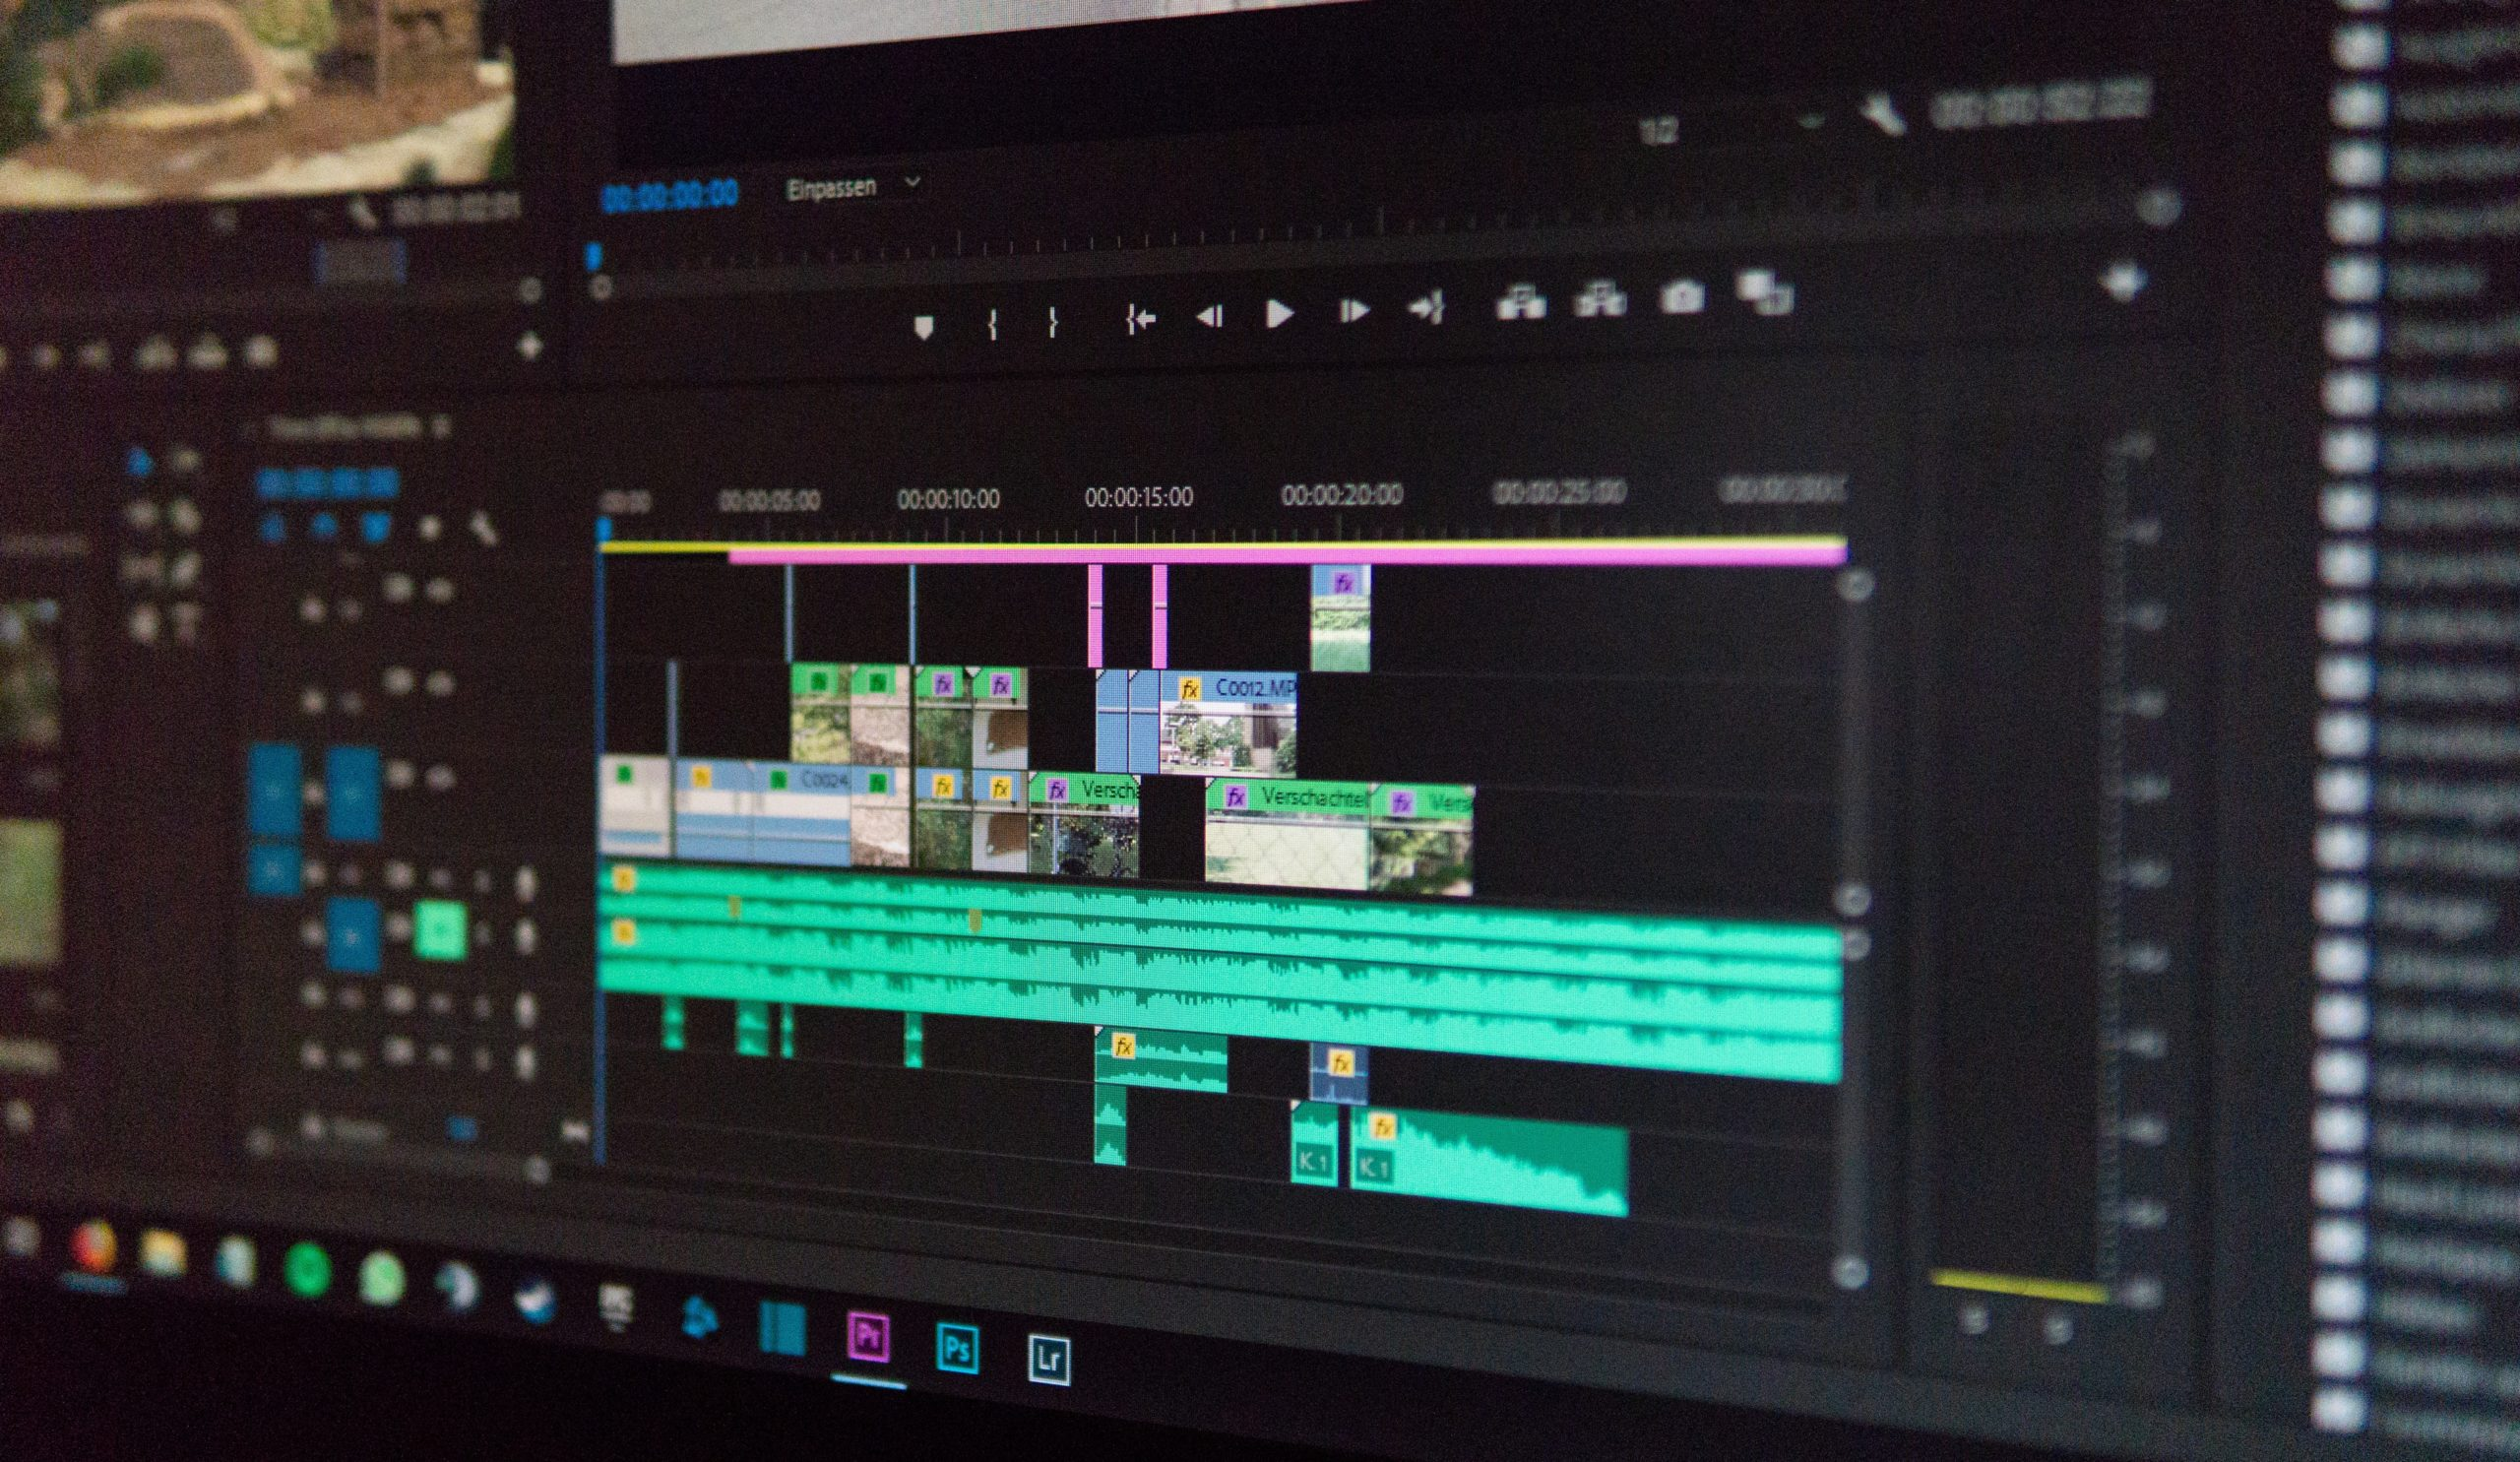 Video timeline on editing software